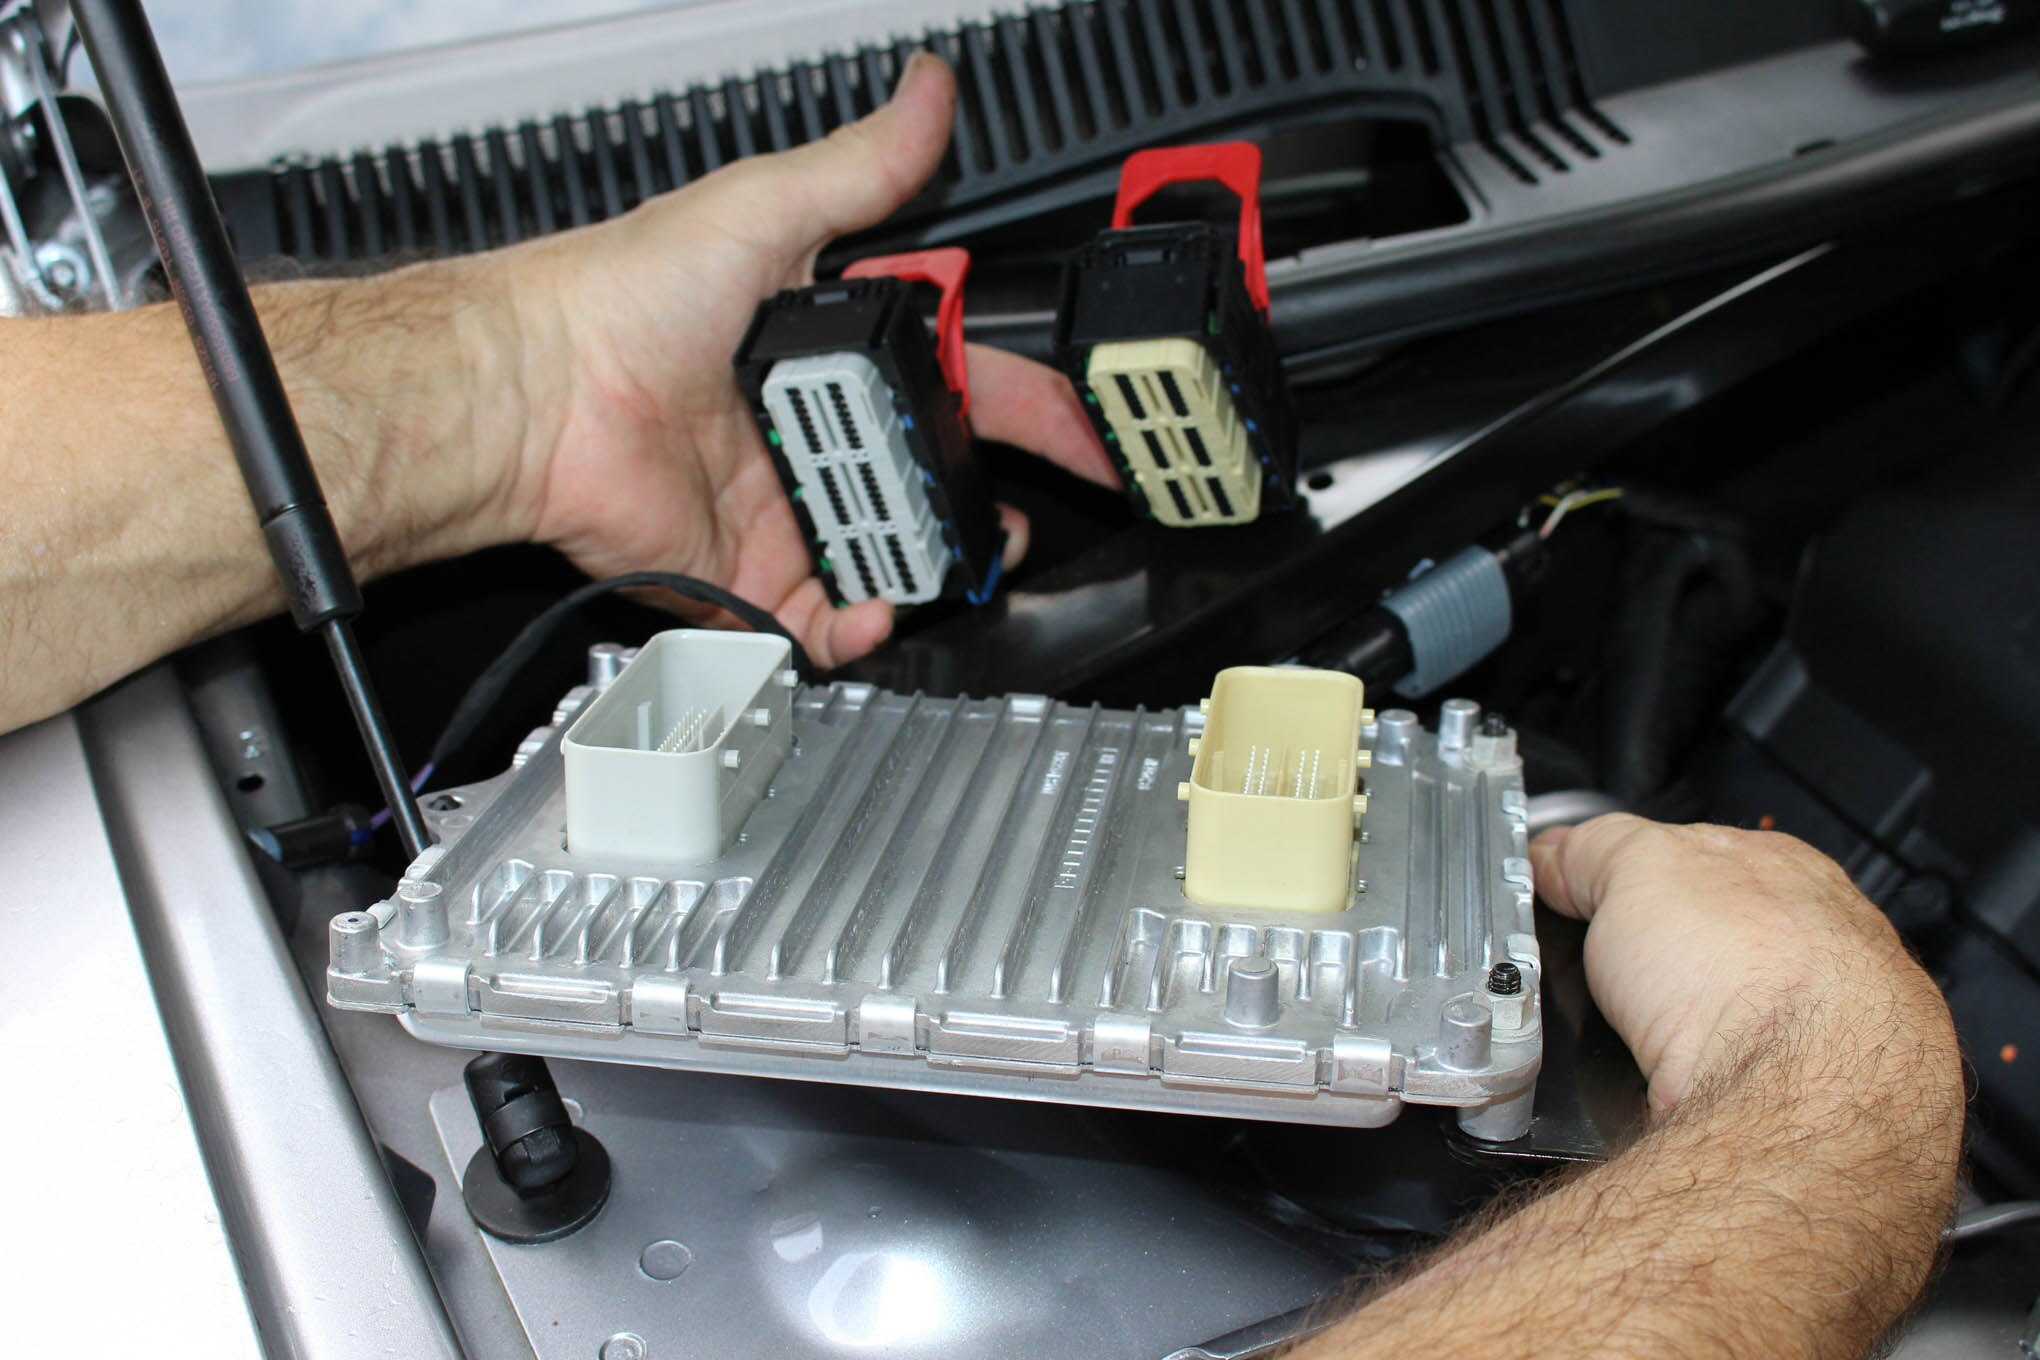 Ram Fuse Diagram Using Diablosport S Tuner To Boost Power On A 2015 Scat